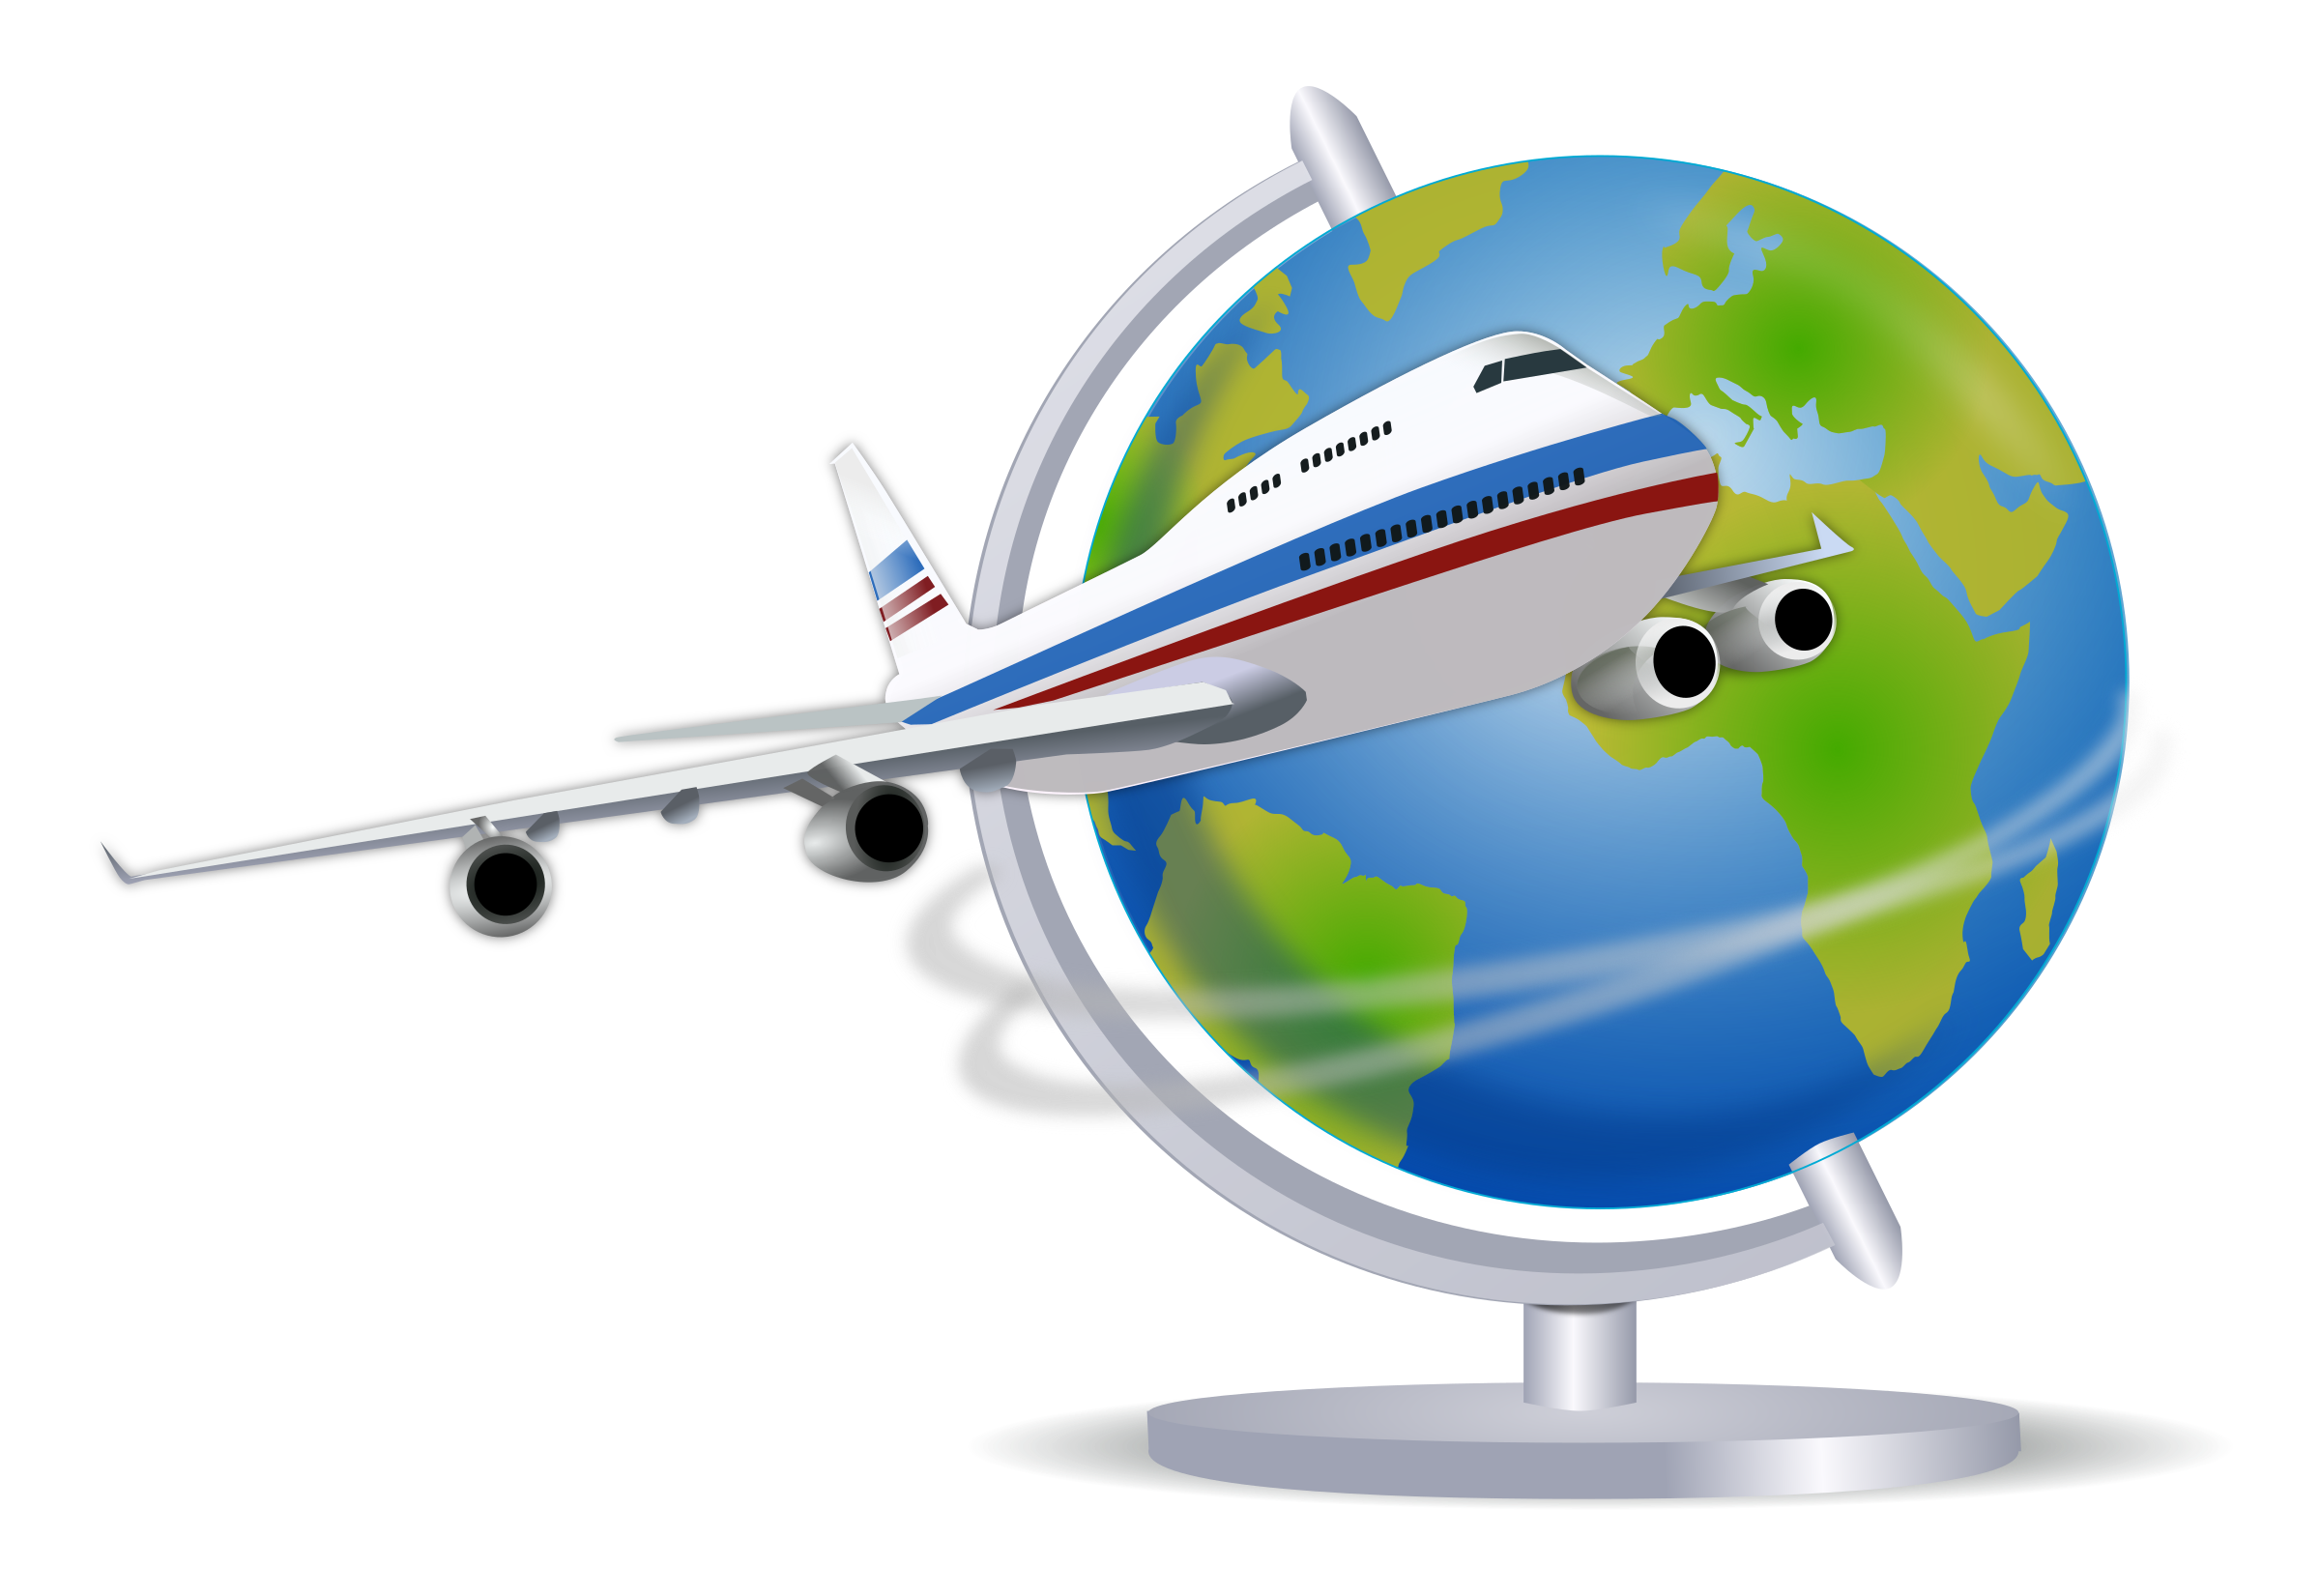 Traveling clipart globe. Travel big image png